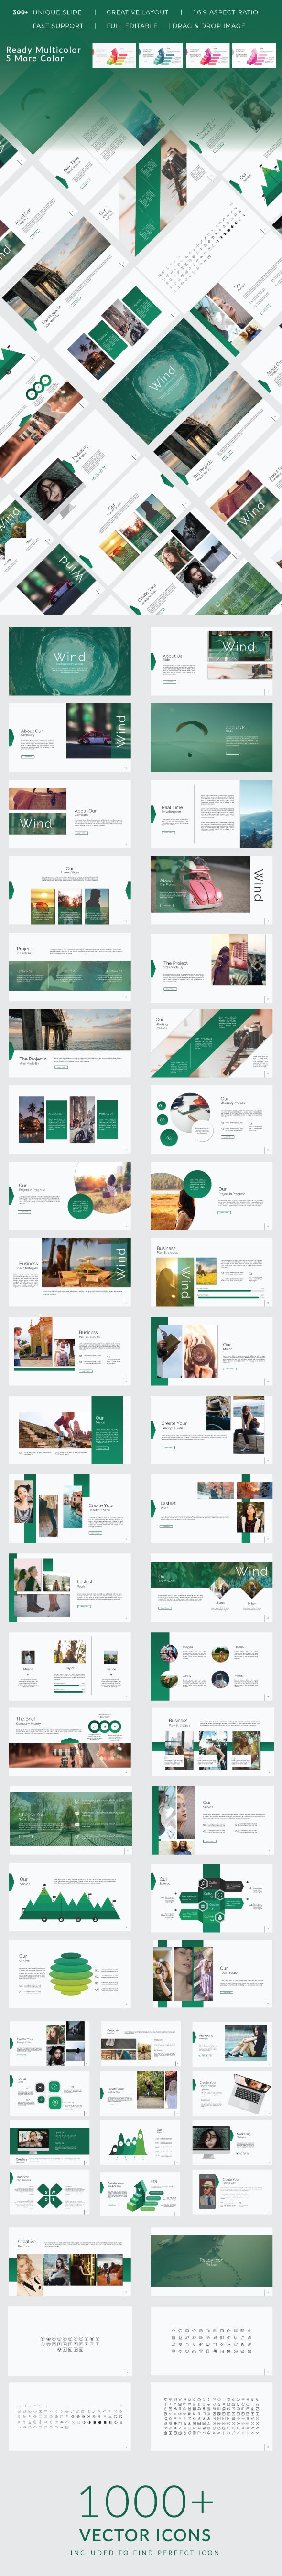 Wind Creative Google Slide - Business PowerPoint Templates